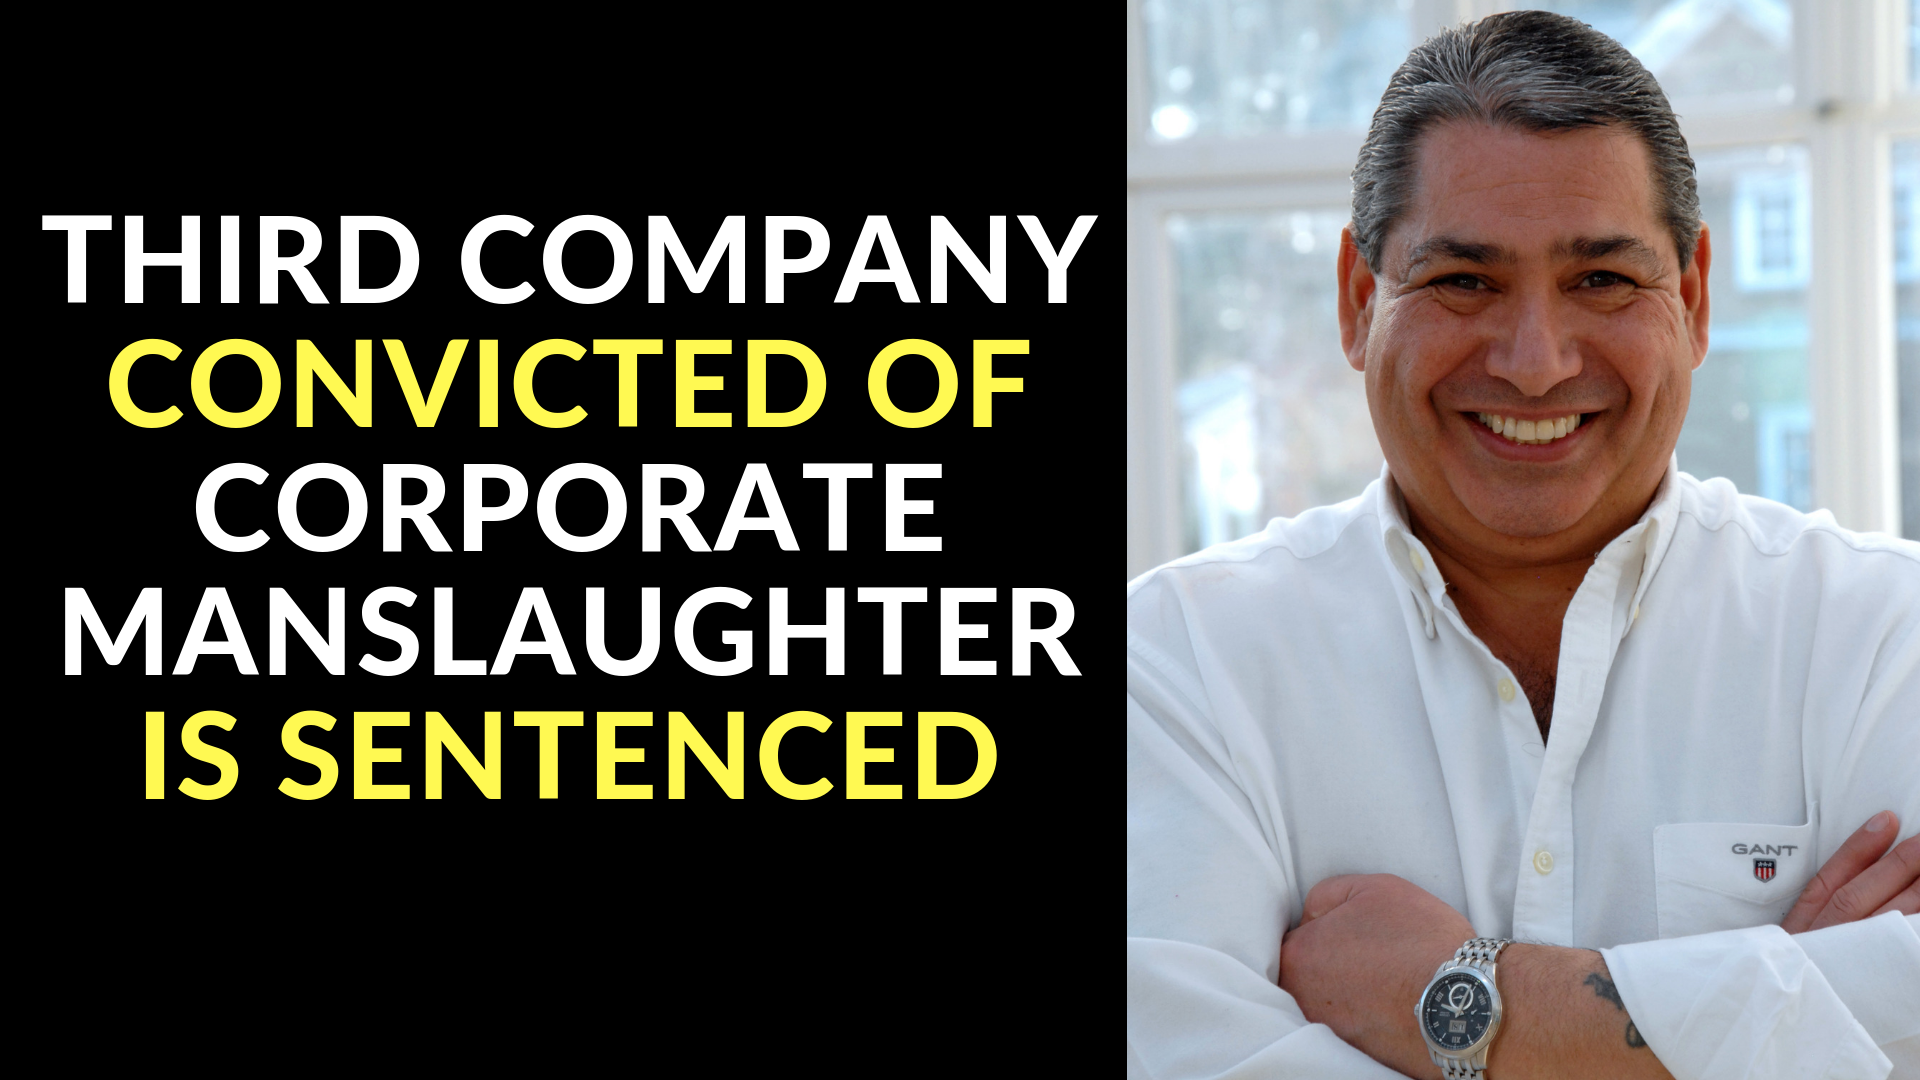 Third Company Convicted of Corporate Manslaughter is Sentenced